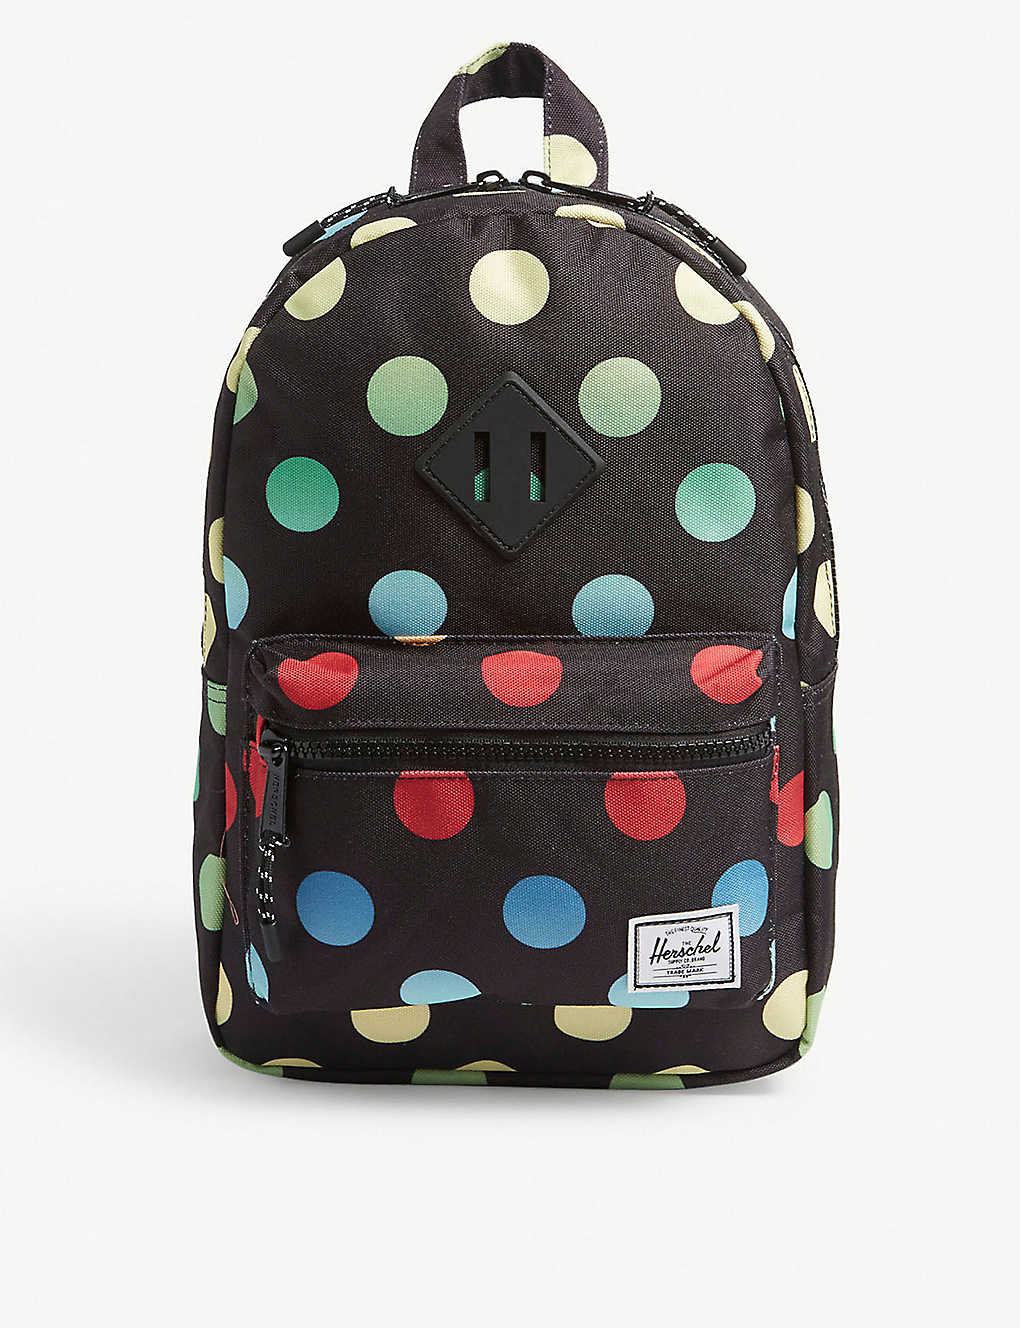 a5b272b27f HERSCHEL SUPPLY CO - Heritage multi-coloured dots backpack ...